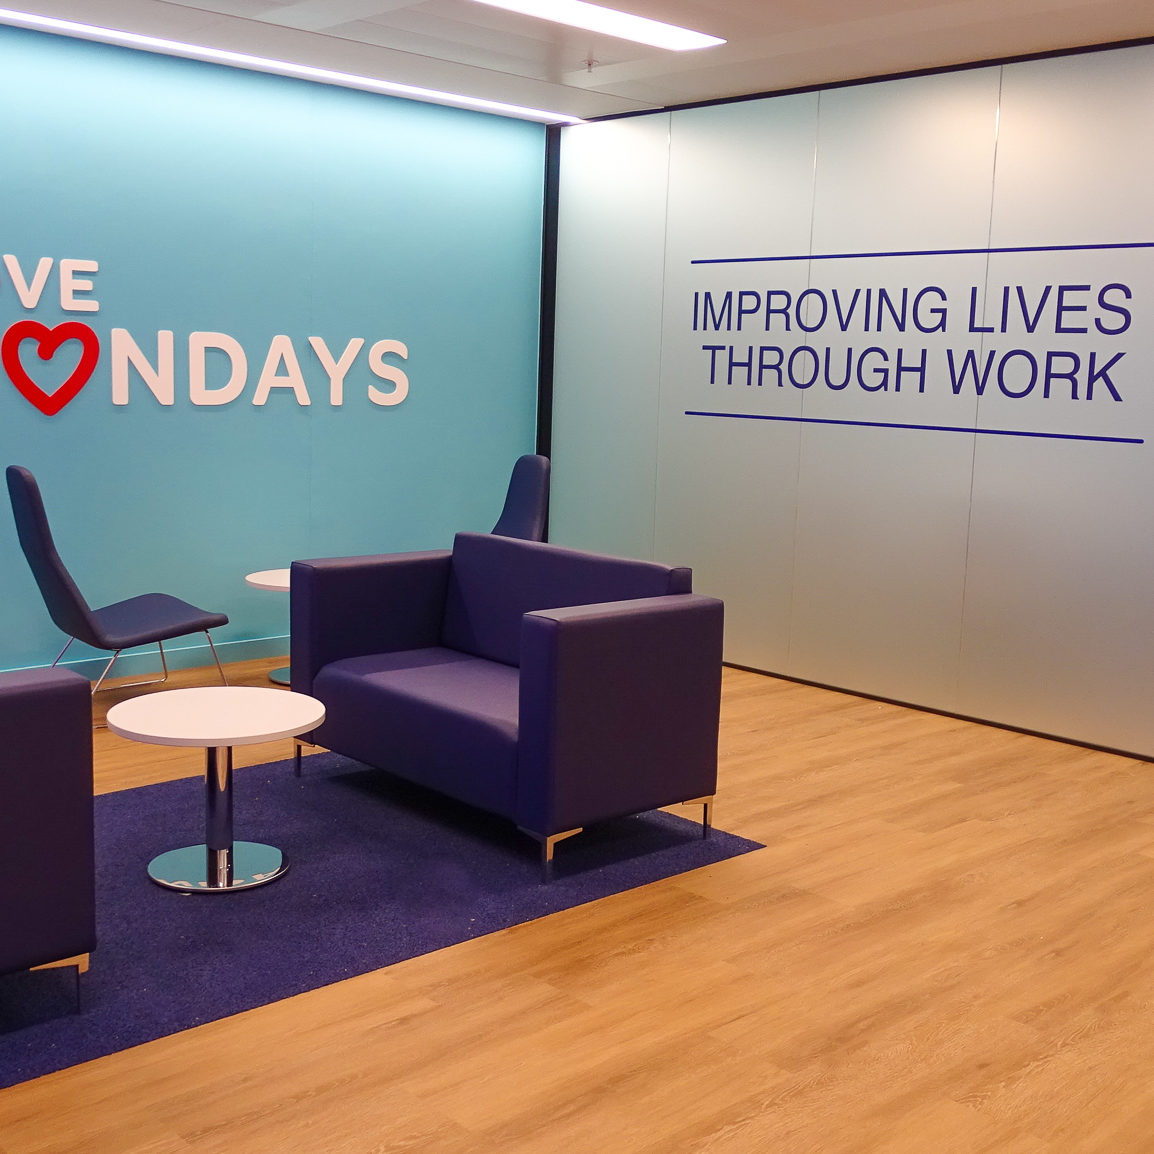 Birmingham Office Reception for RSR including love mondays logo and company purpose of improving lives through work